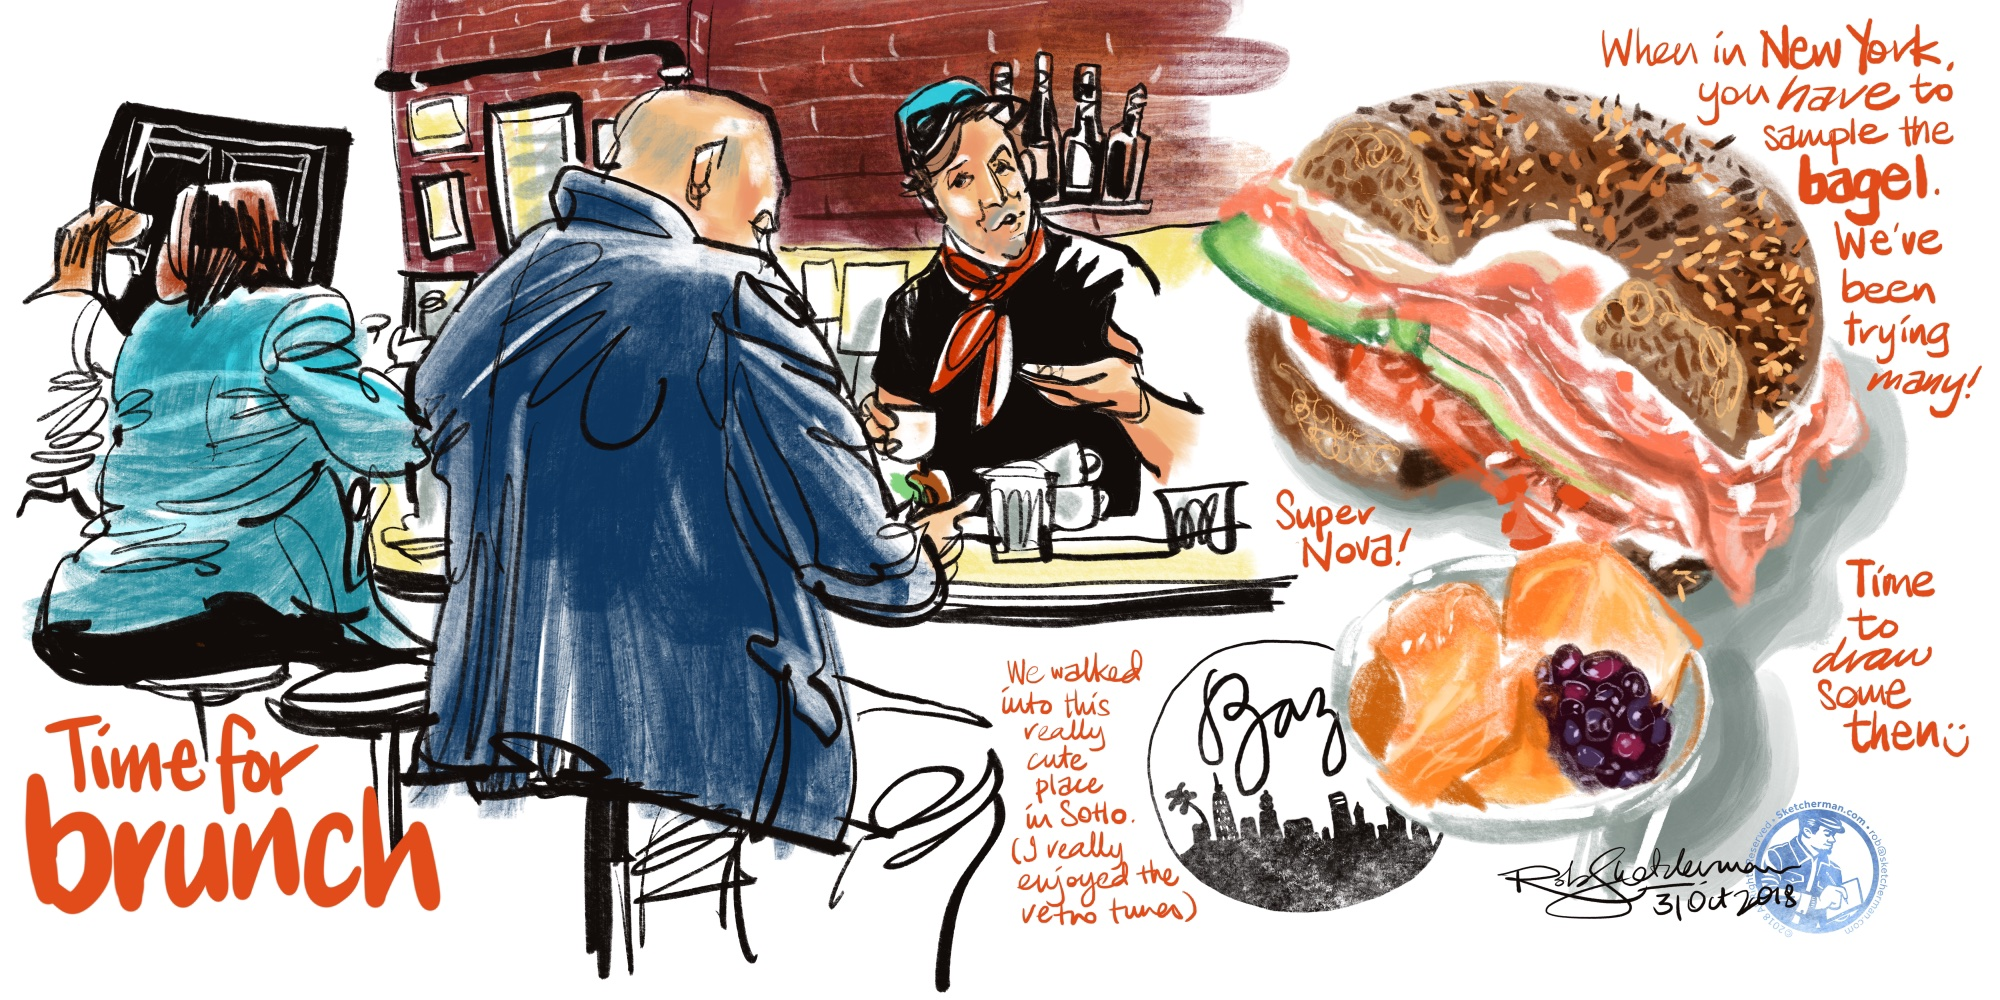 Sketching is a great way to wait for a meal to arrive. I drew the people at the counter, then added my lunch after. (That was a great bagel!)